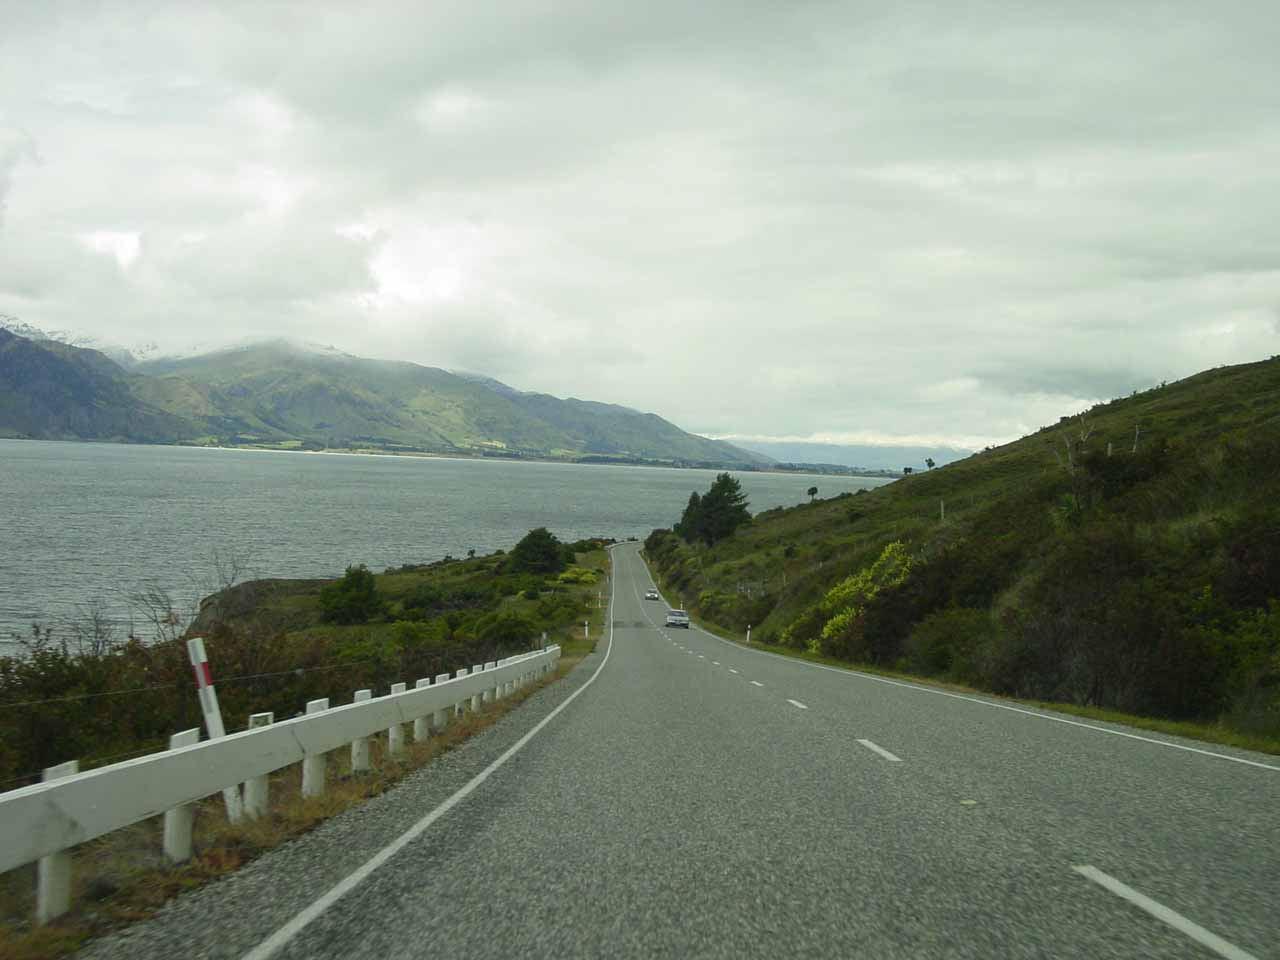 Driving by a large lake on the way to Queenstown